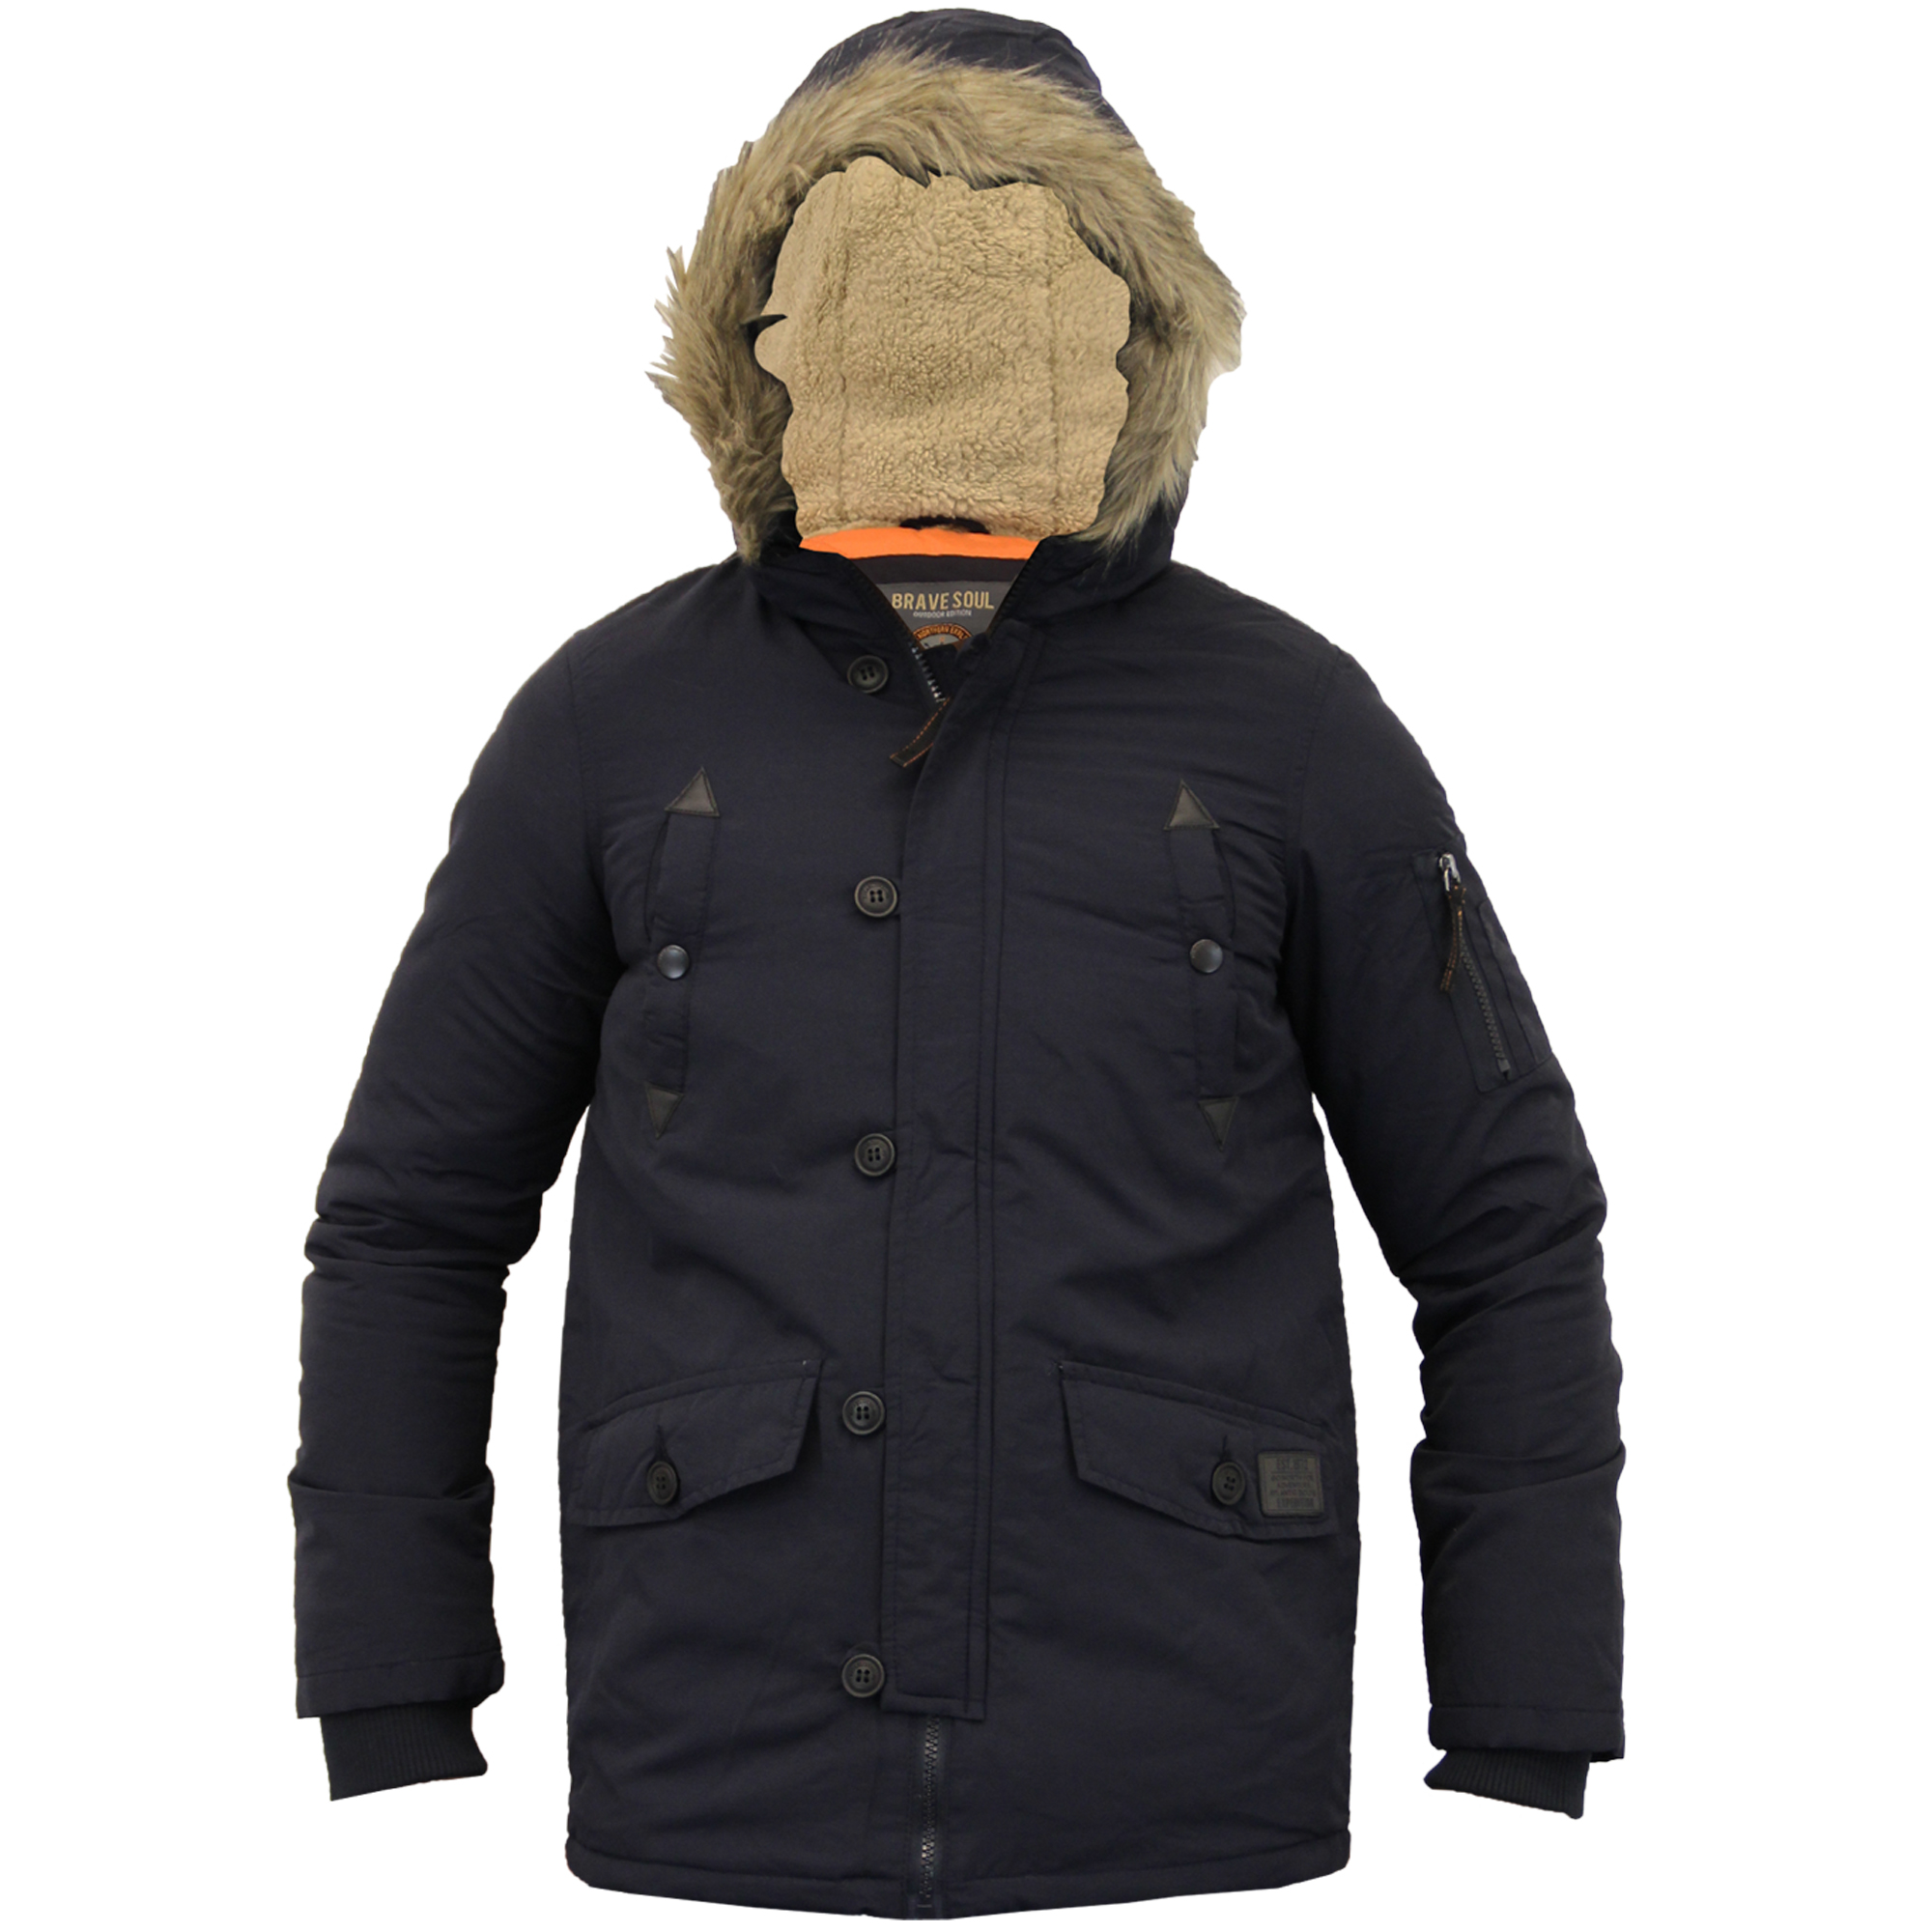 Find great deals on eBay for fur lined parka. Shop with confidence.